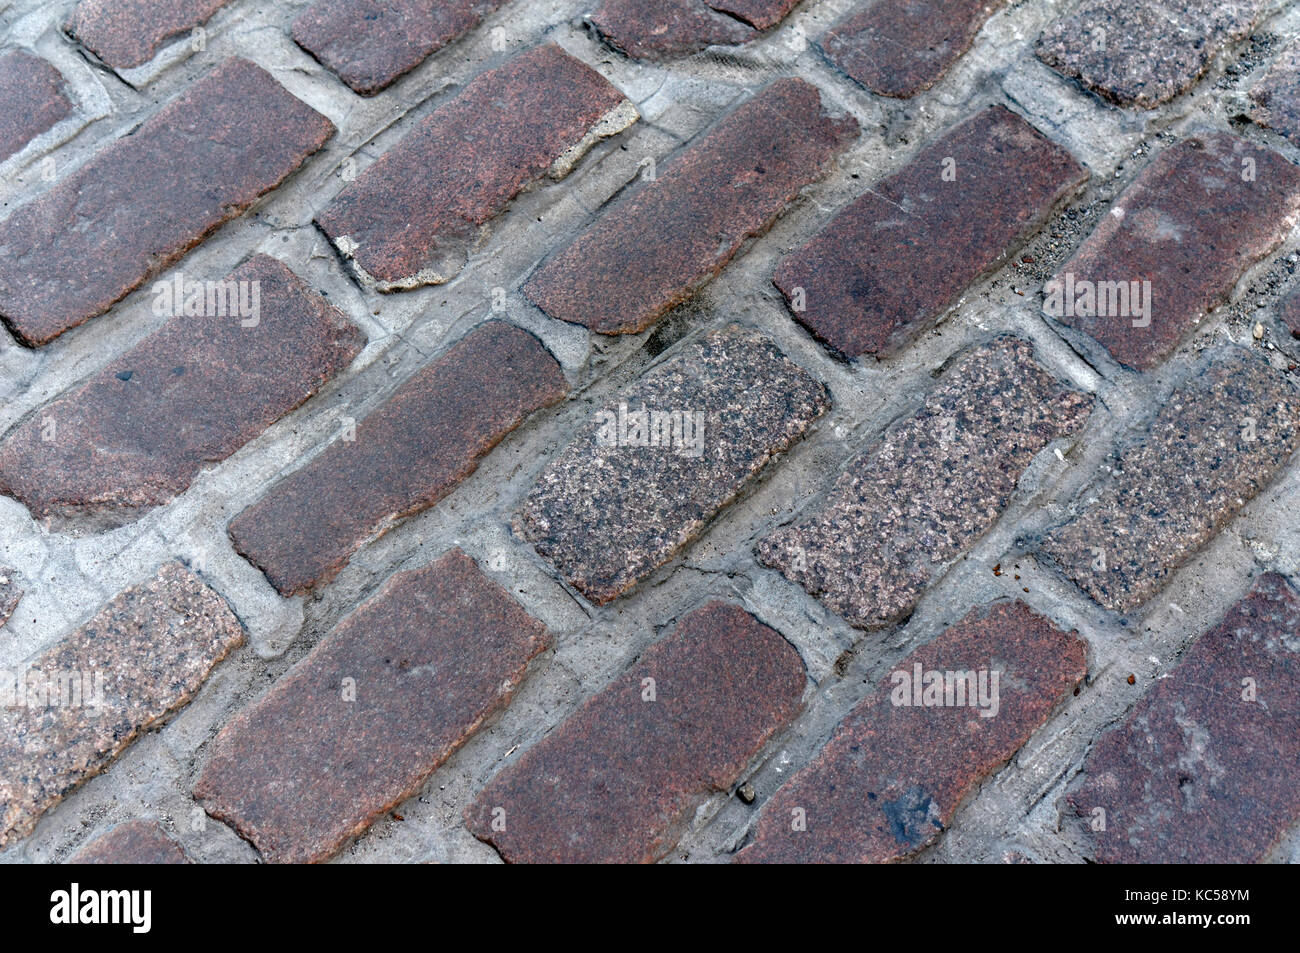 Close-up of rectangular cobblestones (setts) on a cobblestone street in Old Montreal, Quebec, Canada - Stock Image